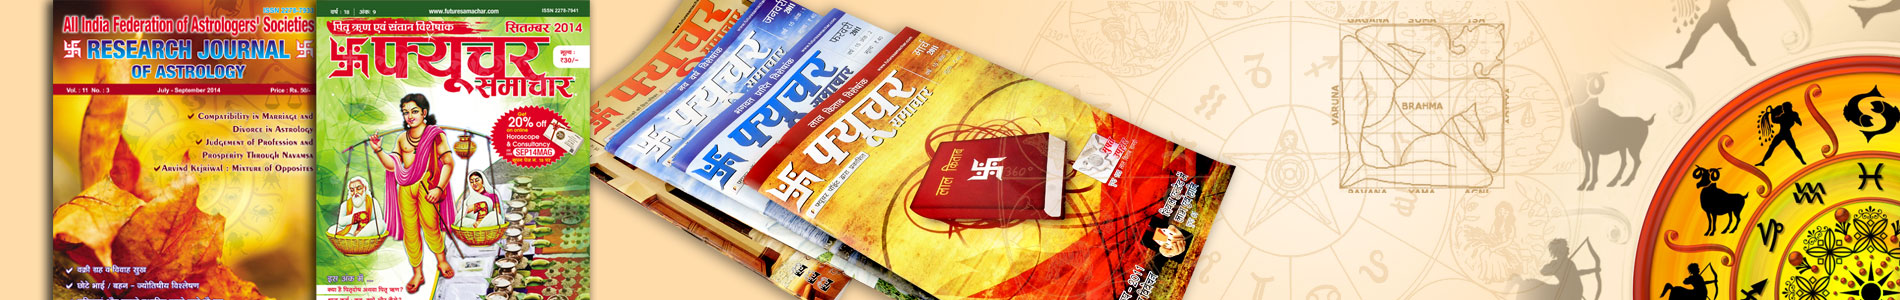 India's Most popular astrology magazine